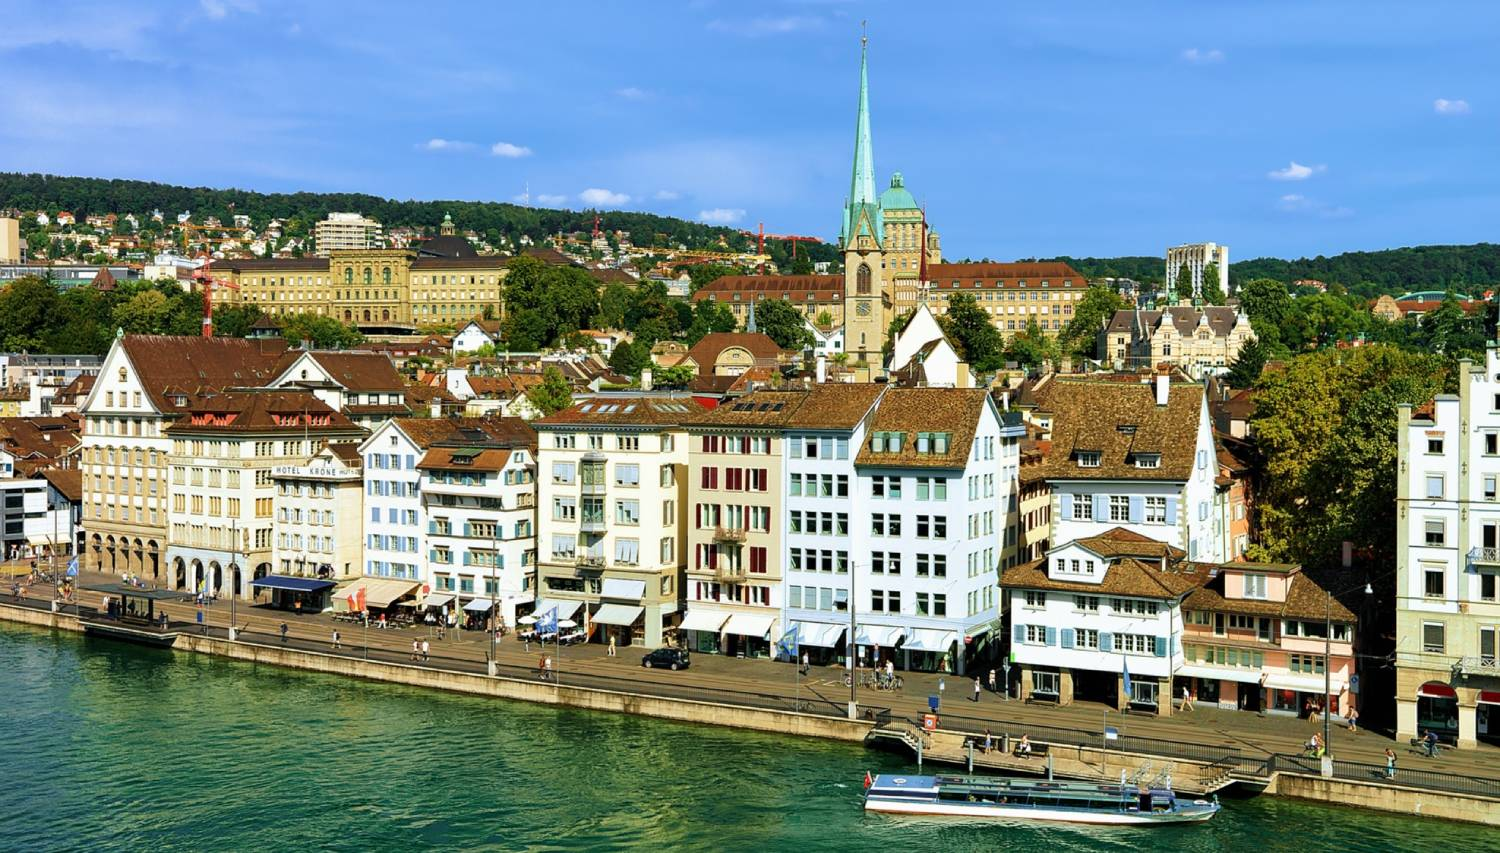 Limmatquai - Things To Do In Zurich